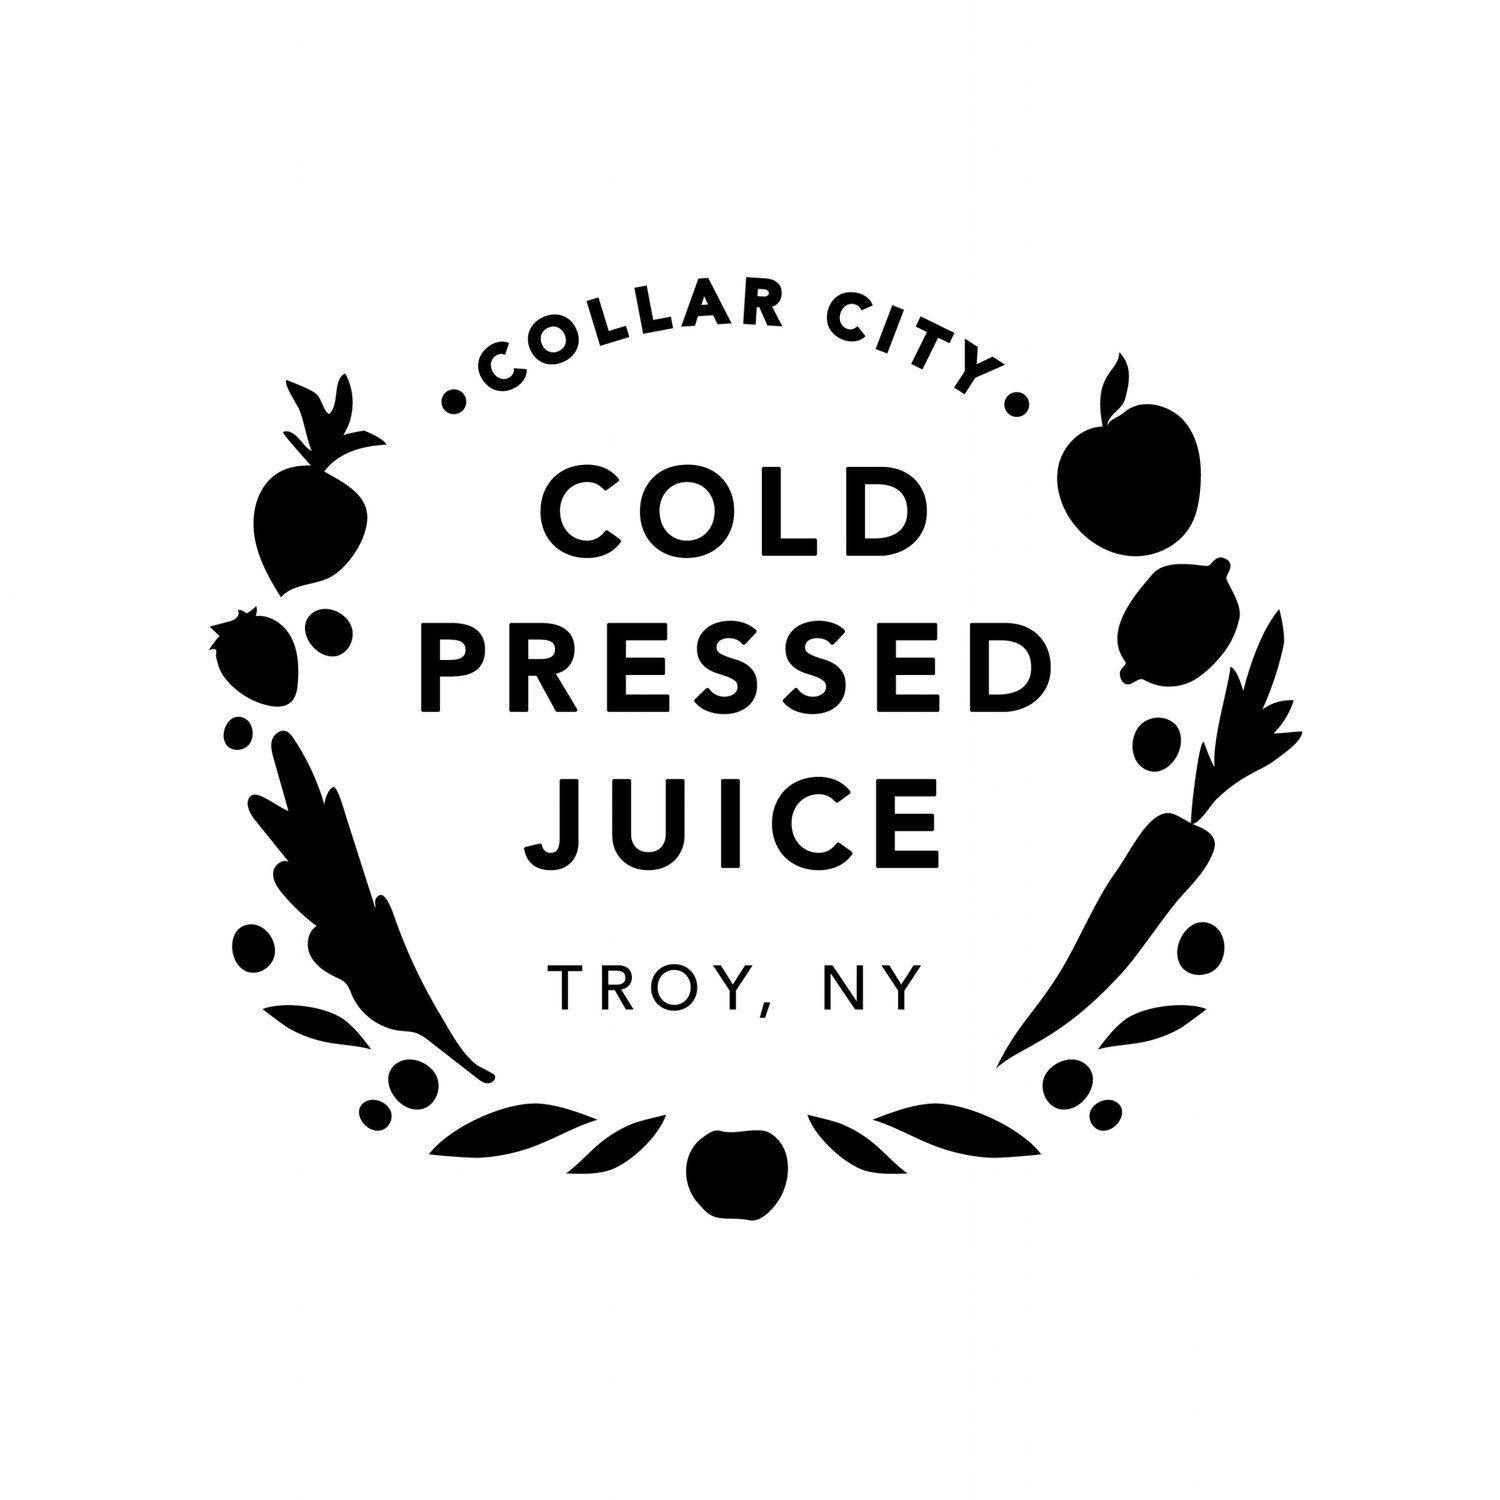 Collar City Cold Pressed